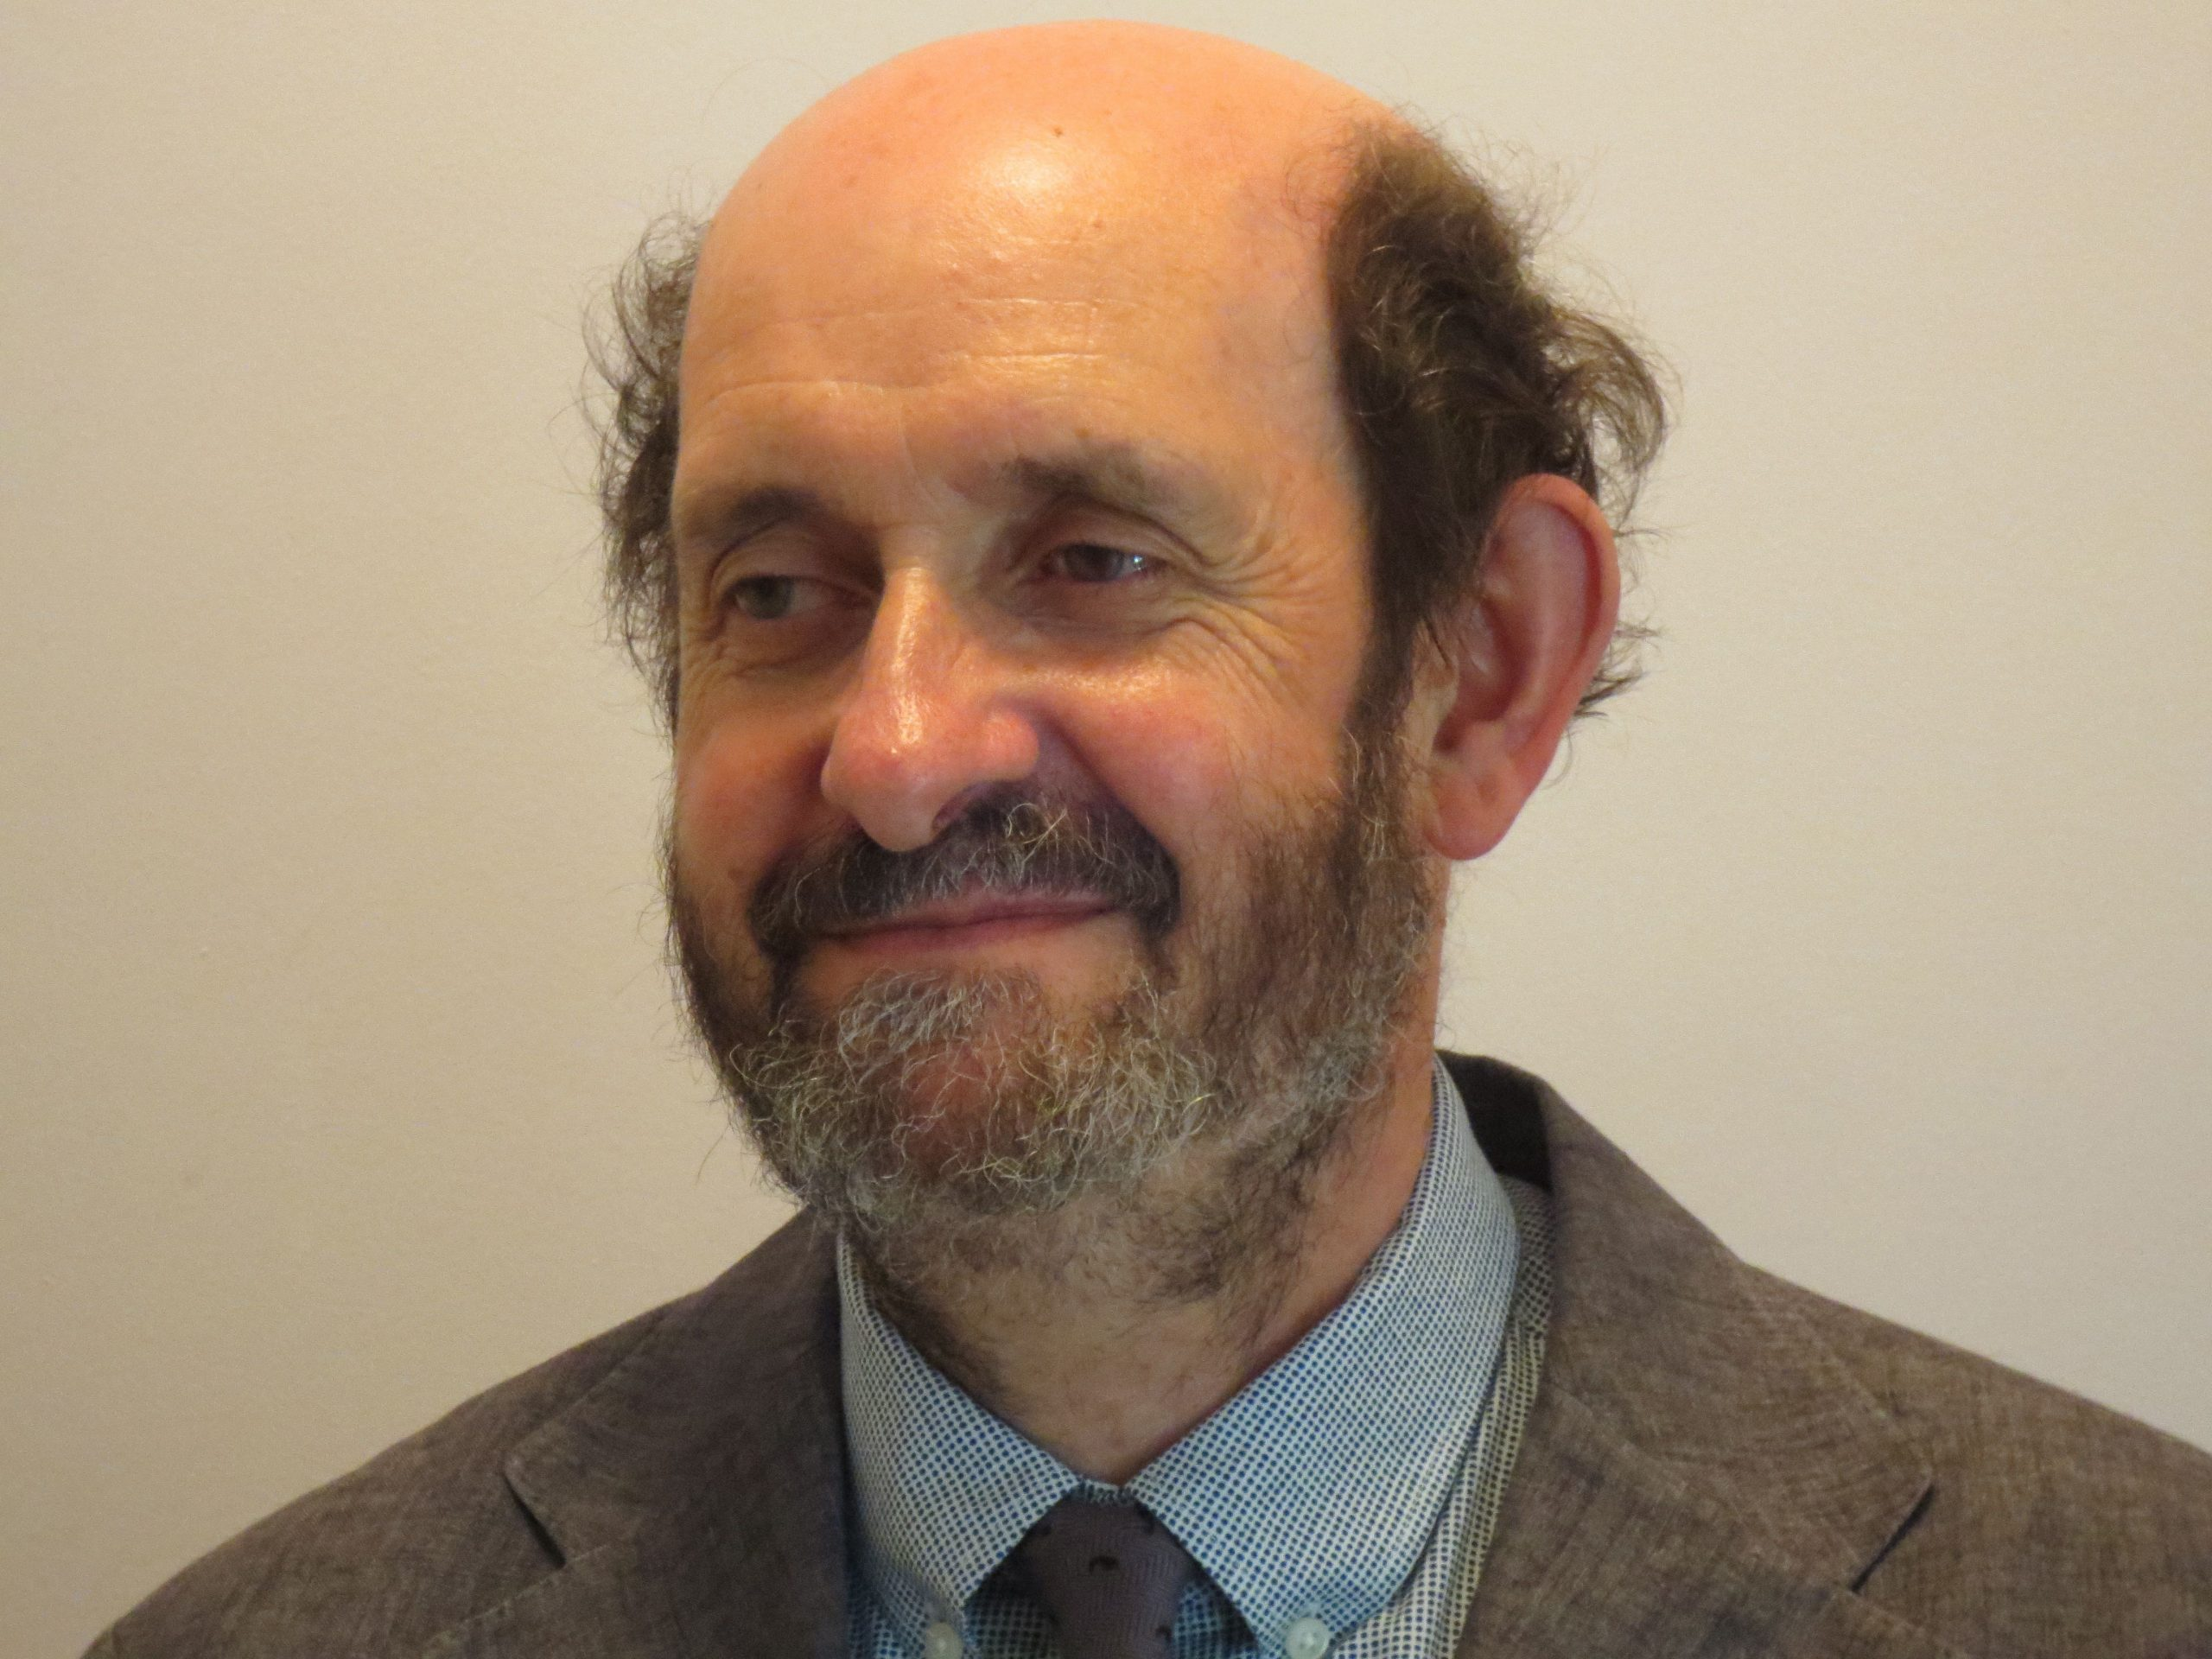 A man with a short beard wearing a brown suit jacket and blue shirt